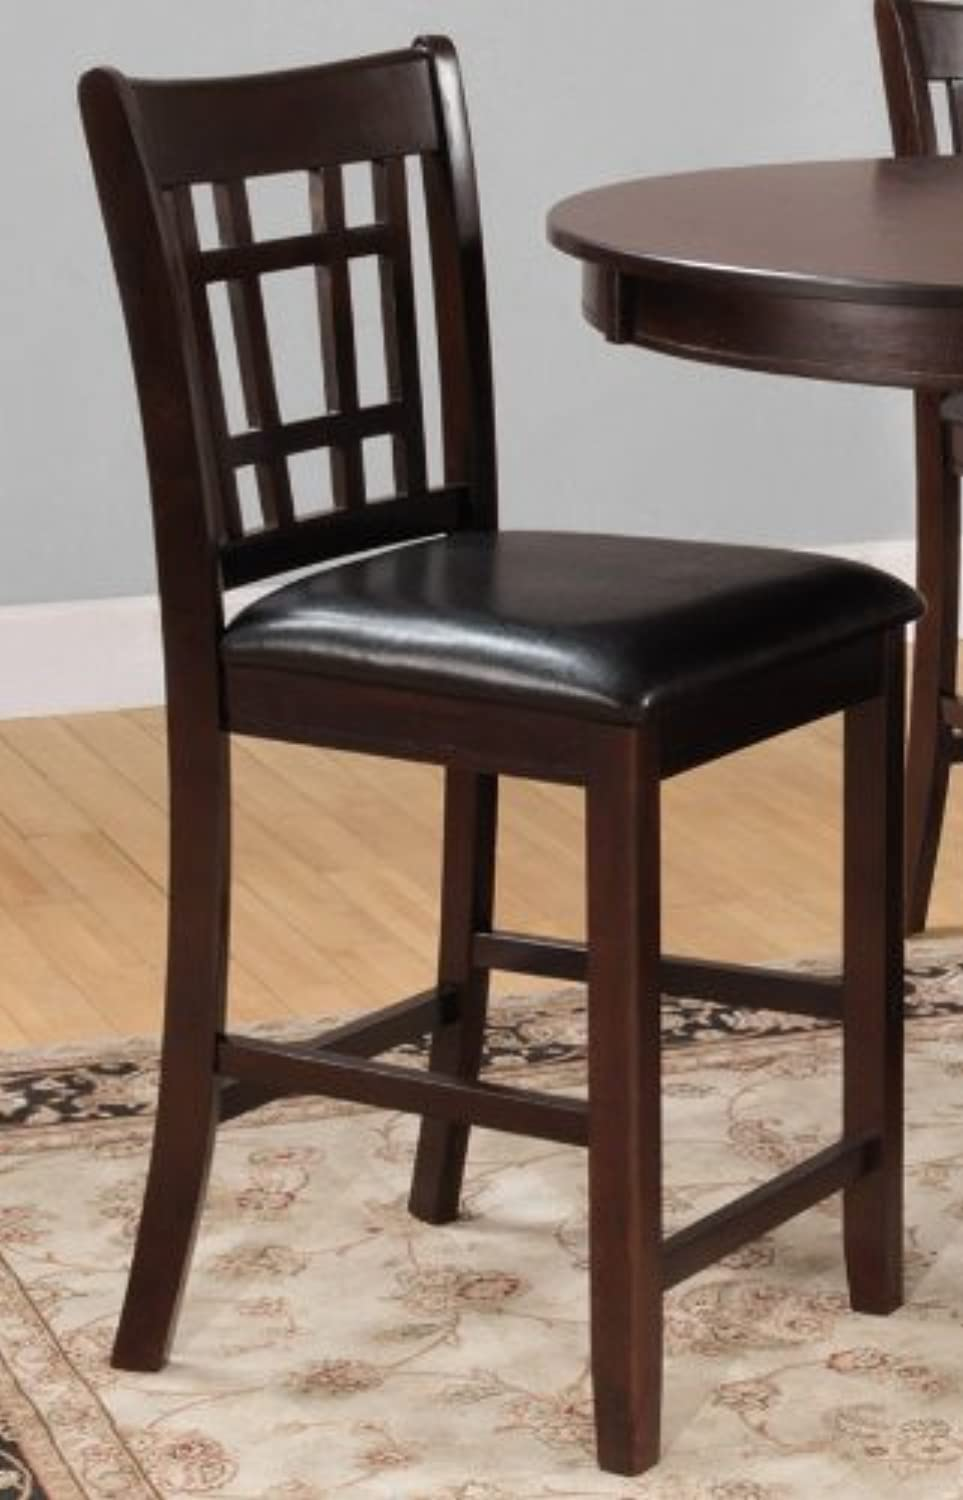 Benzara BM179905 Wooden Counter Height Chair, Set of Two, Brown and Black